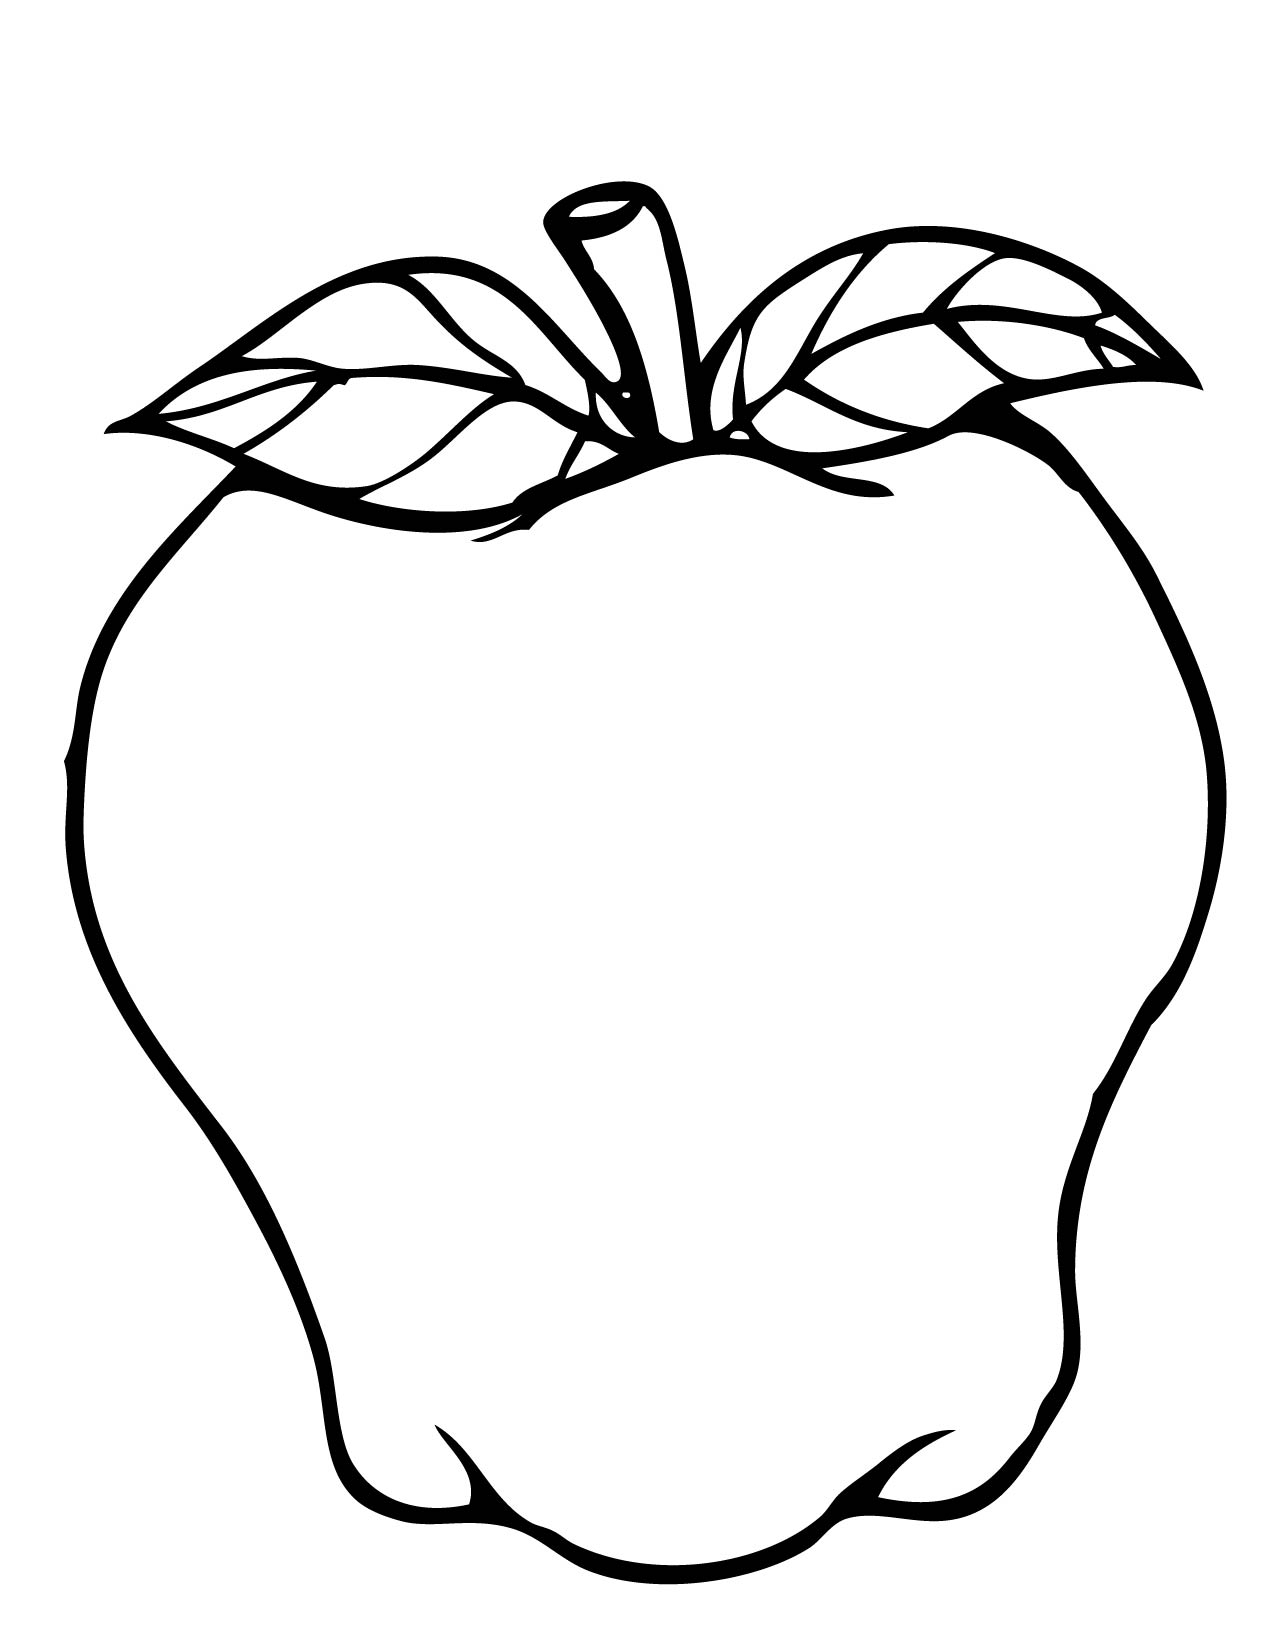 apple colouring images apple coloring pages the sun flower pages colouring apple images 1 1